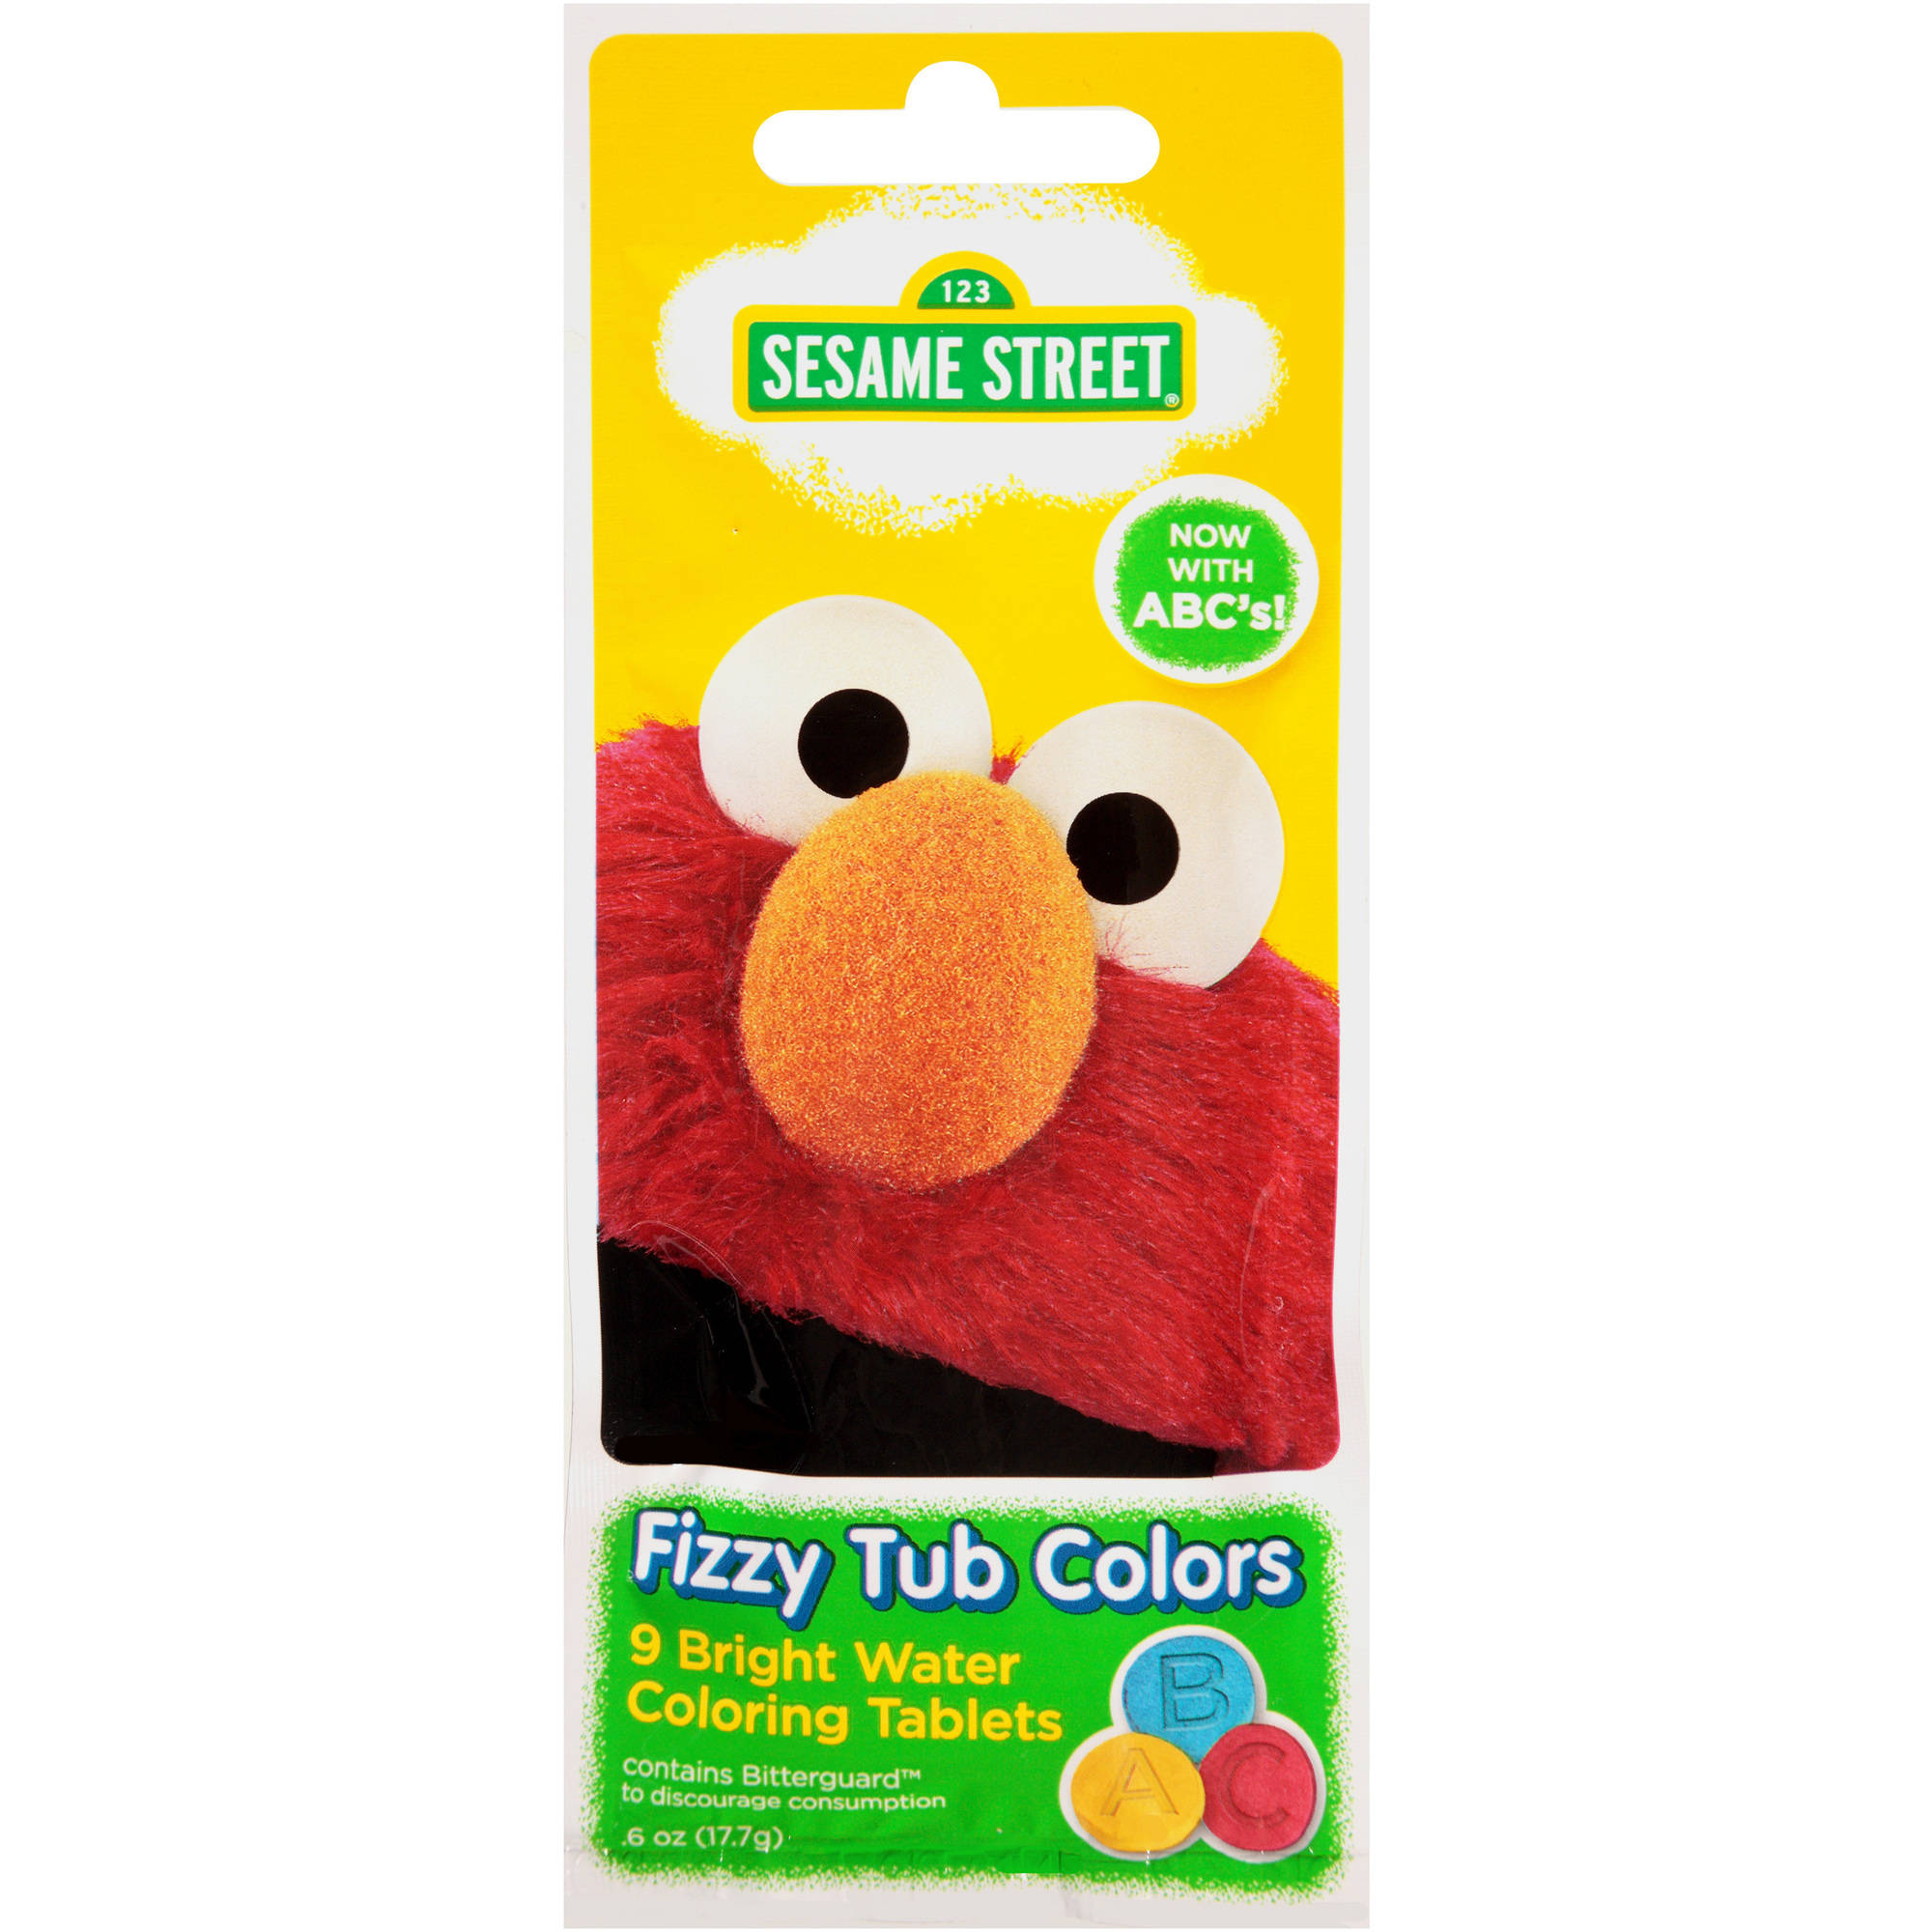 Sesame Street Fizzy Tub Colors Water Coloring Tablets, 9 count, 6 oz